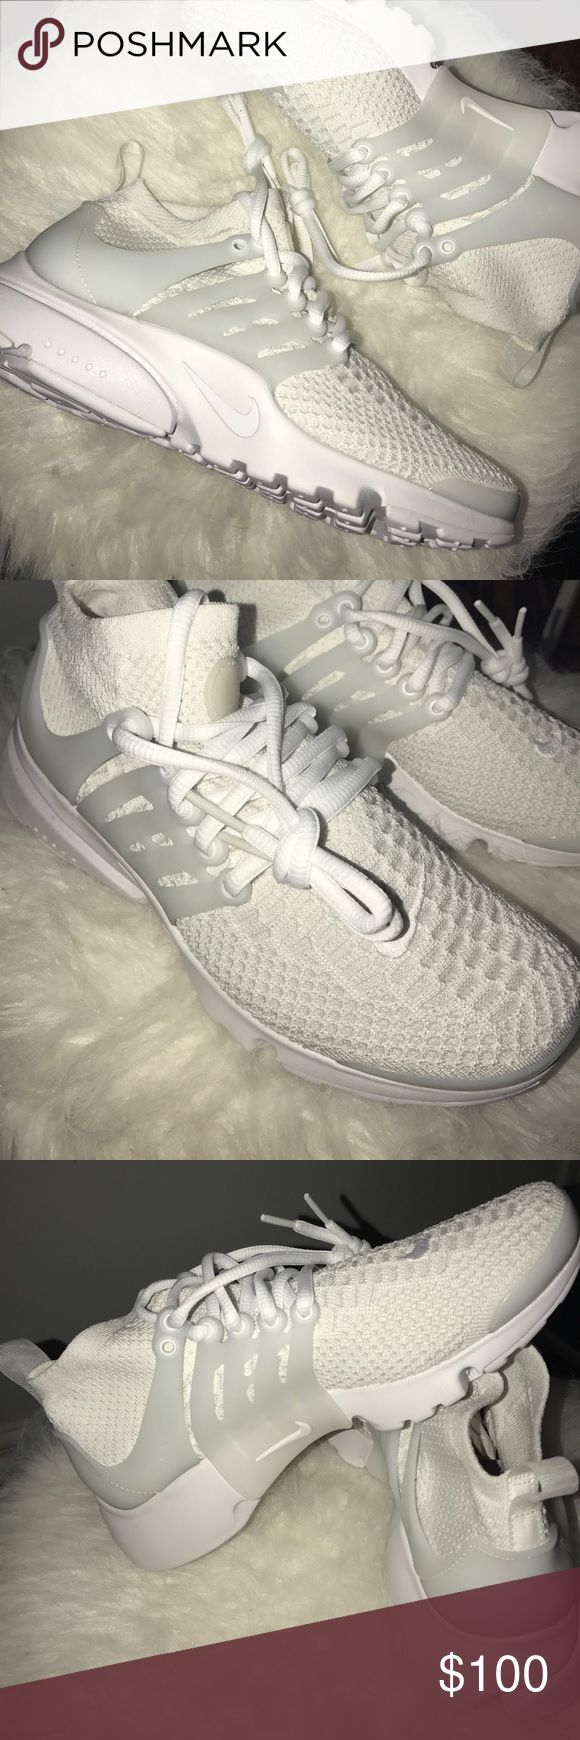 Nike All White Prestos Ultra Flyknit Never been used. Women's size 7. Does not come with box. Nike Shoes Sneakers